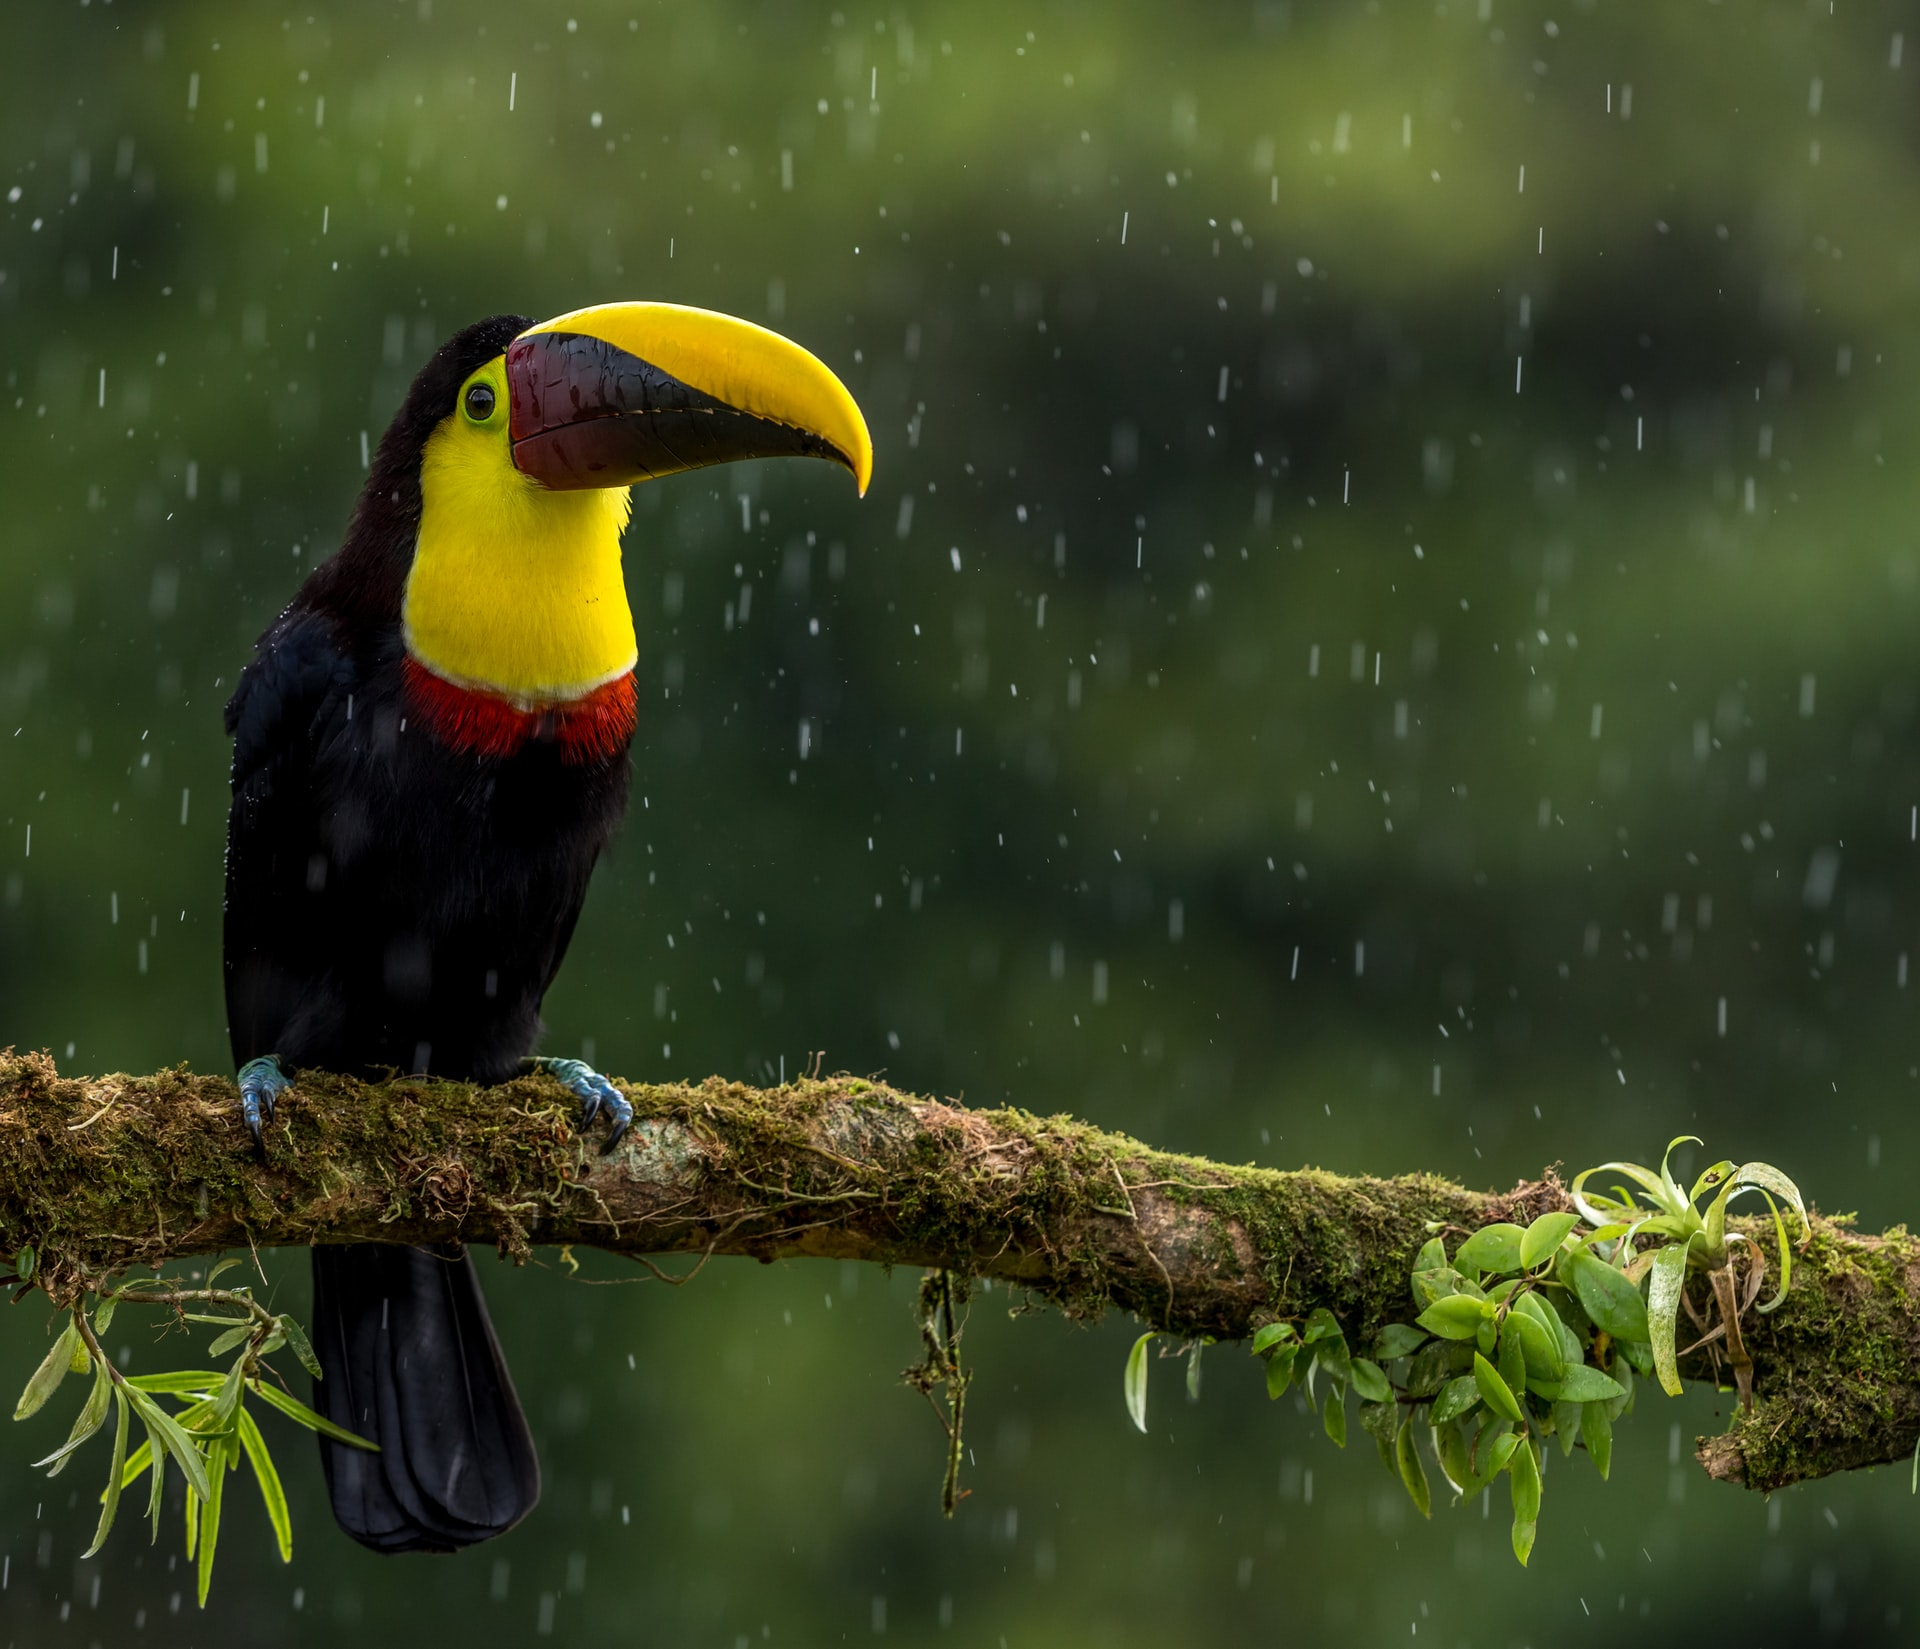 costa rica photography tour 1 image